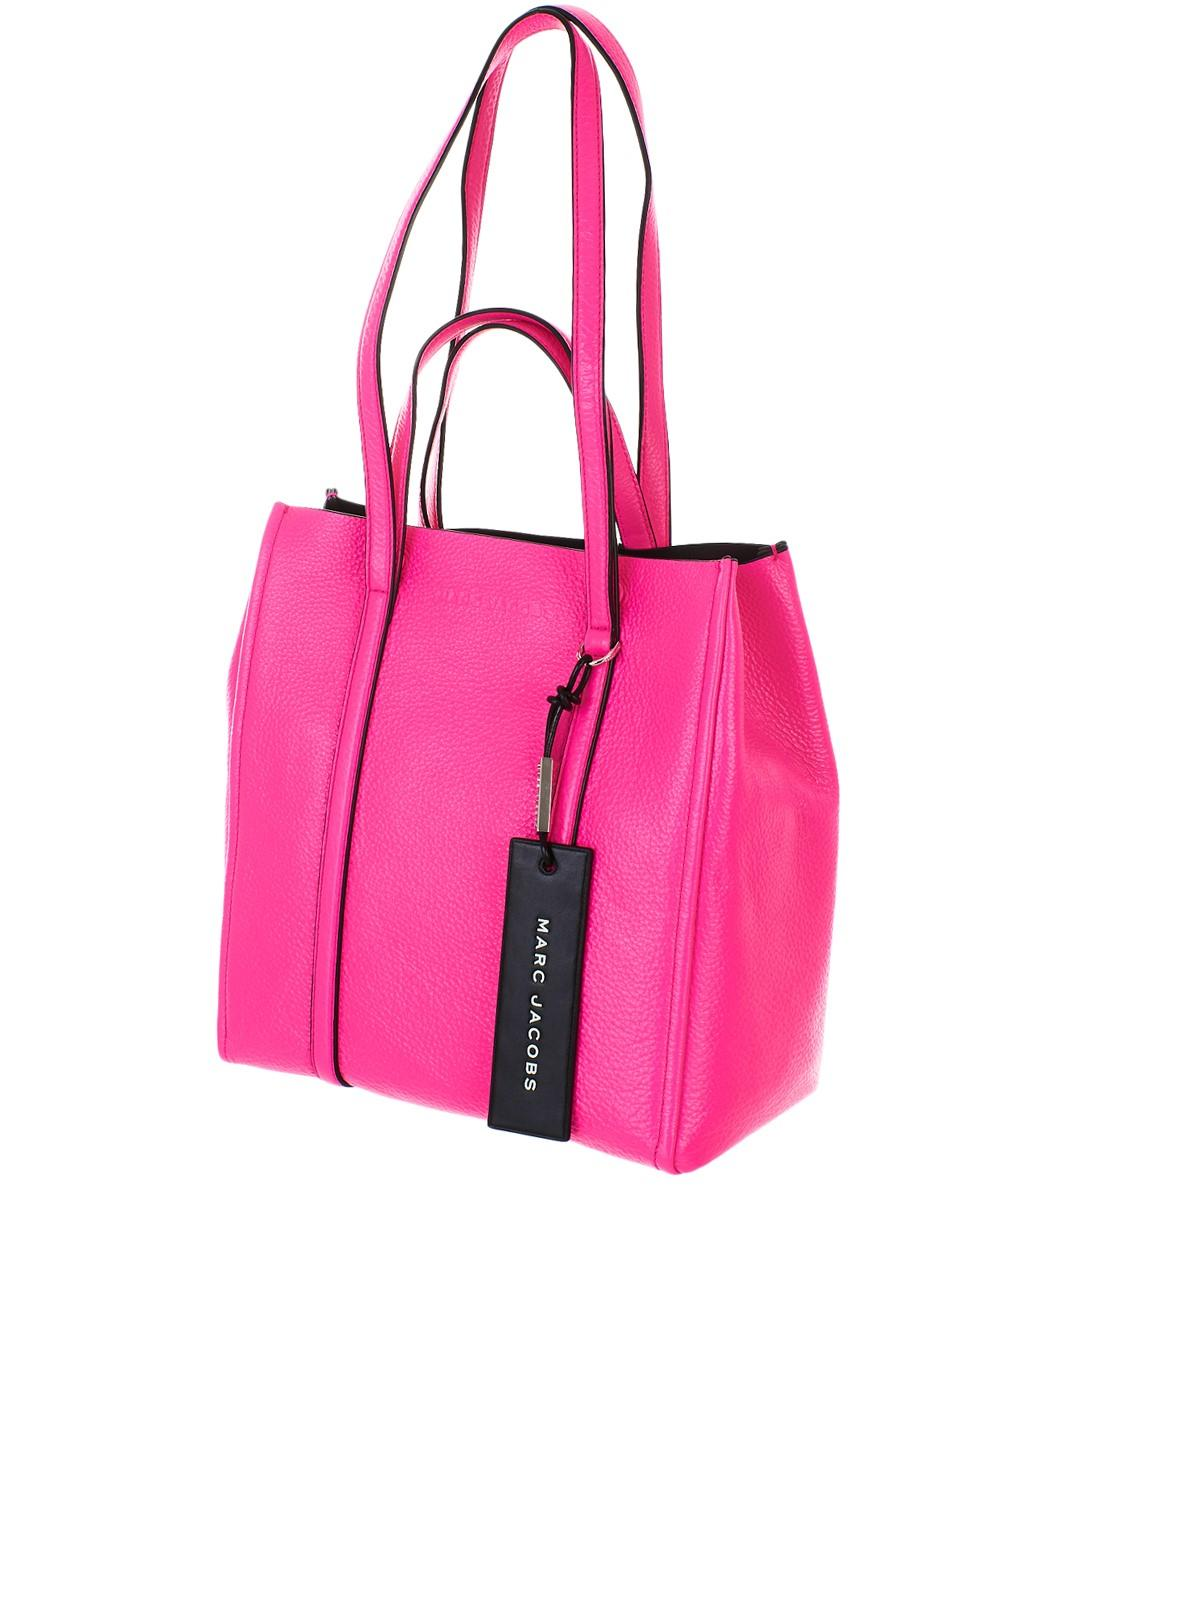 1b9482d54935 Lyst - Marc Jacobs The Tag Tote 27 Bag in Pink - Save 38%